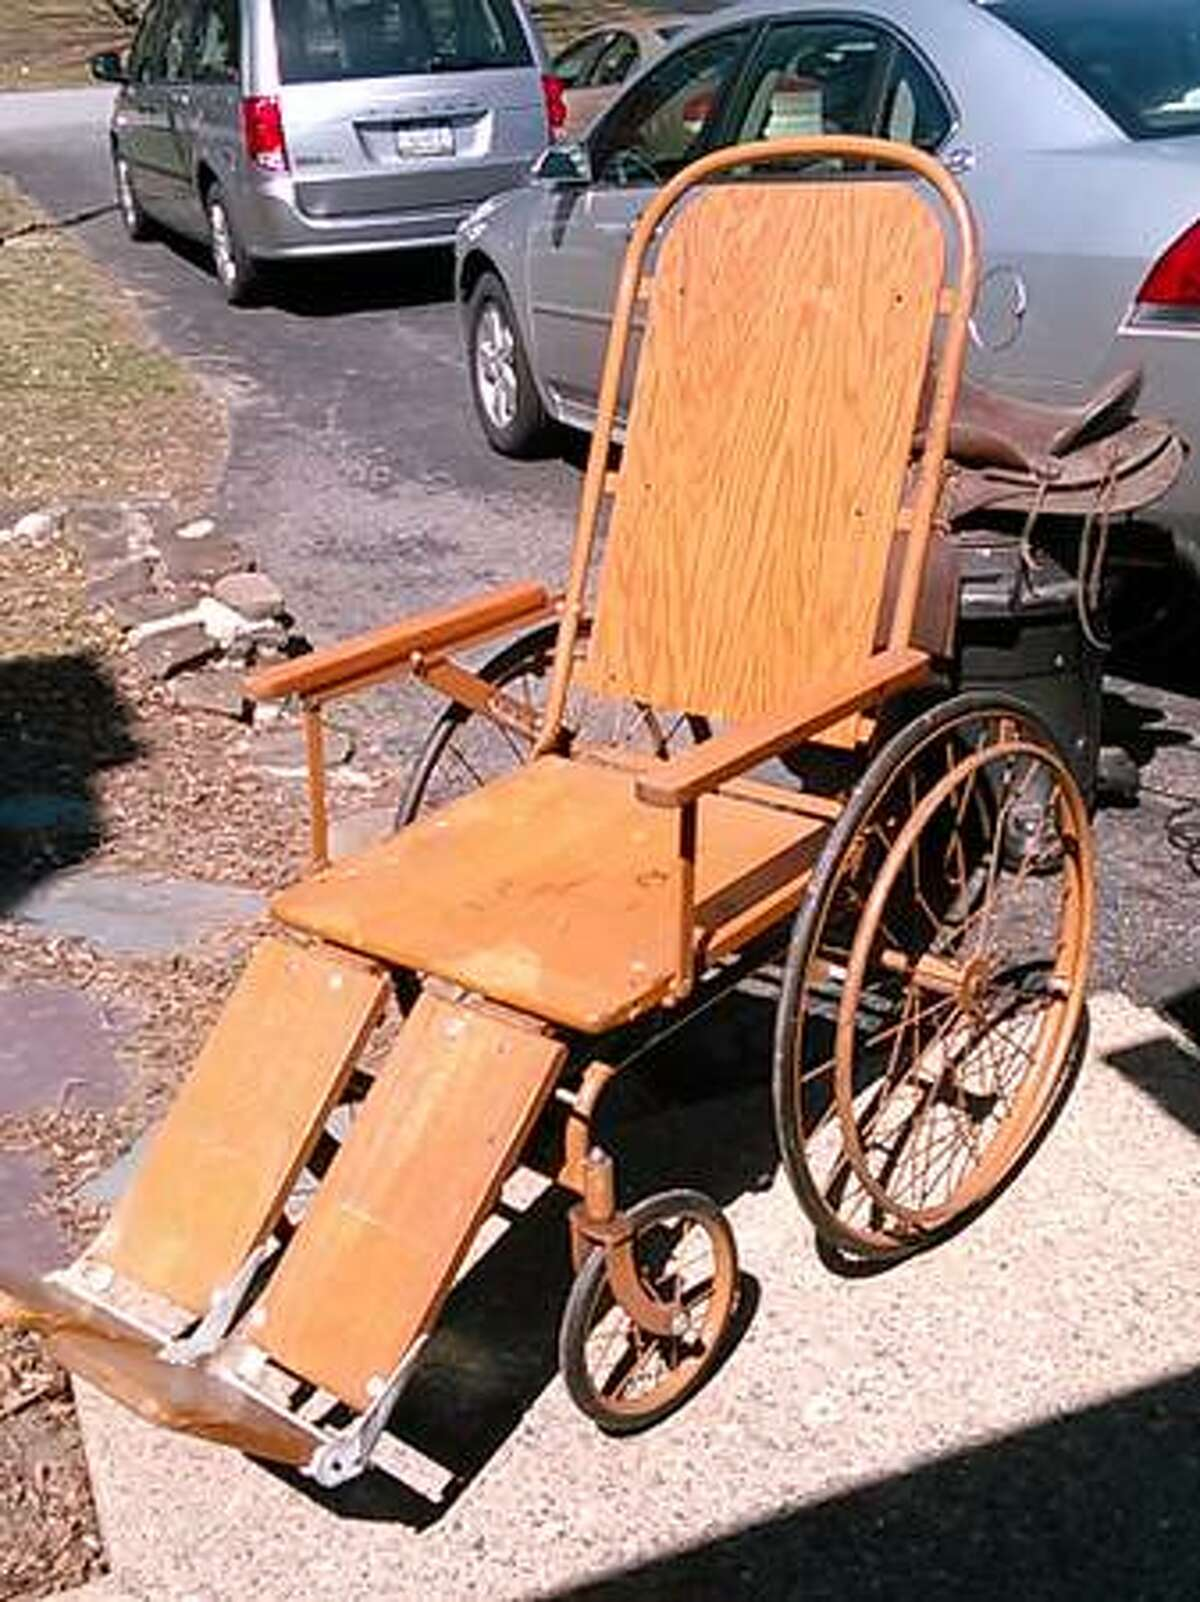 Colson antique wheelchair - $150. From the listing: Used in a couple plays at Proctors. Very good condition. See the listing.